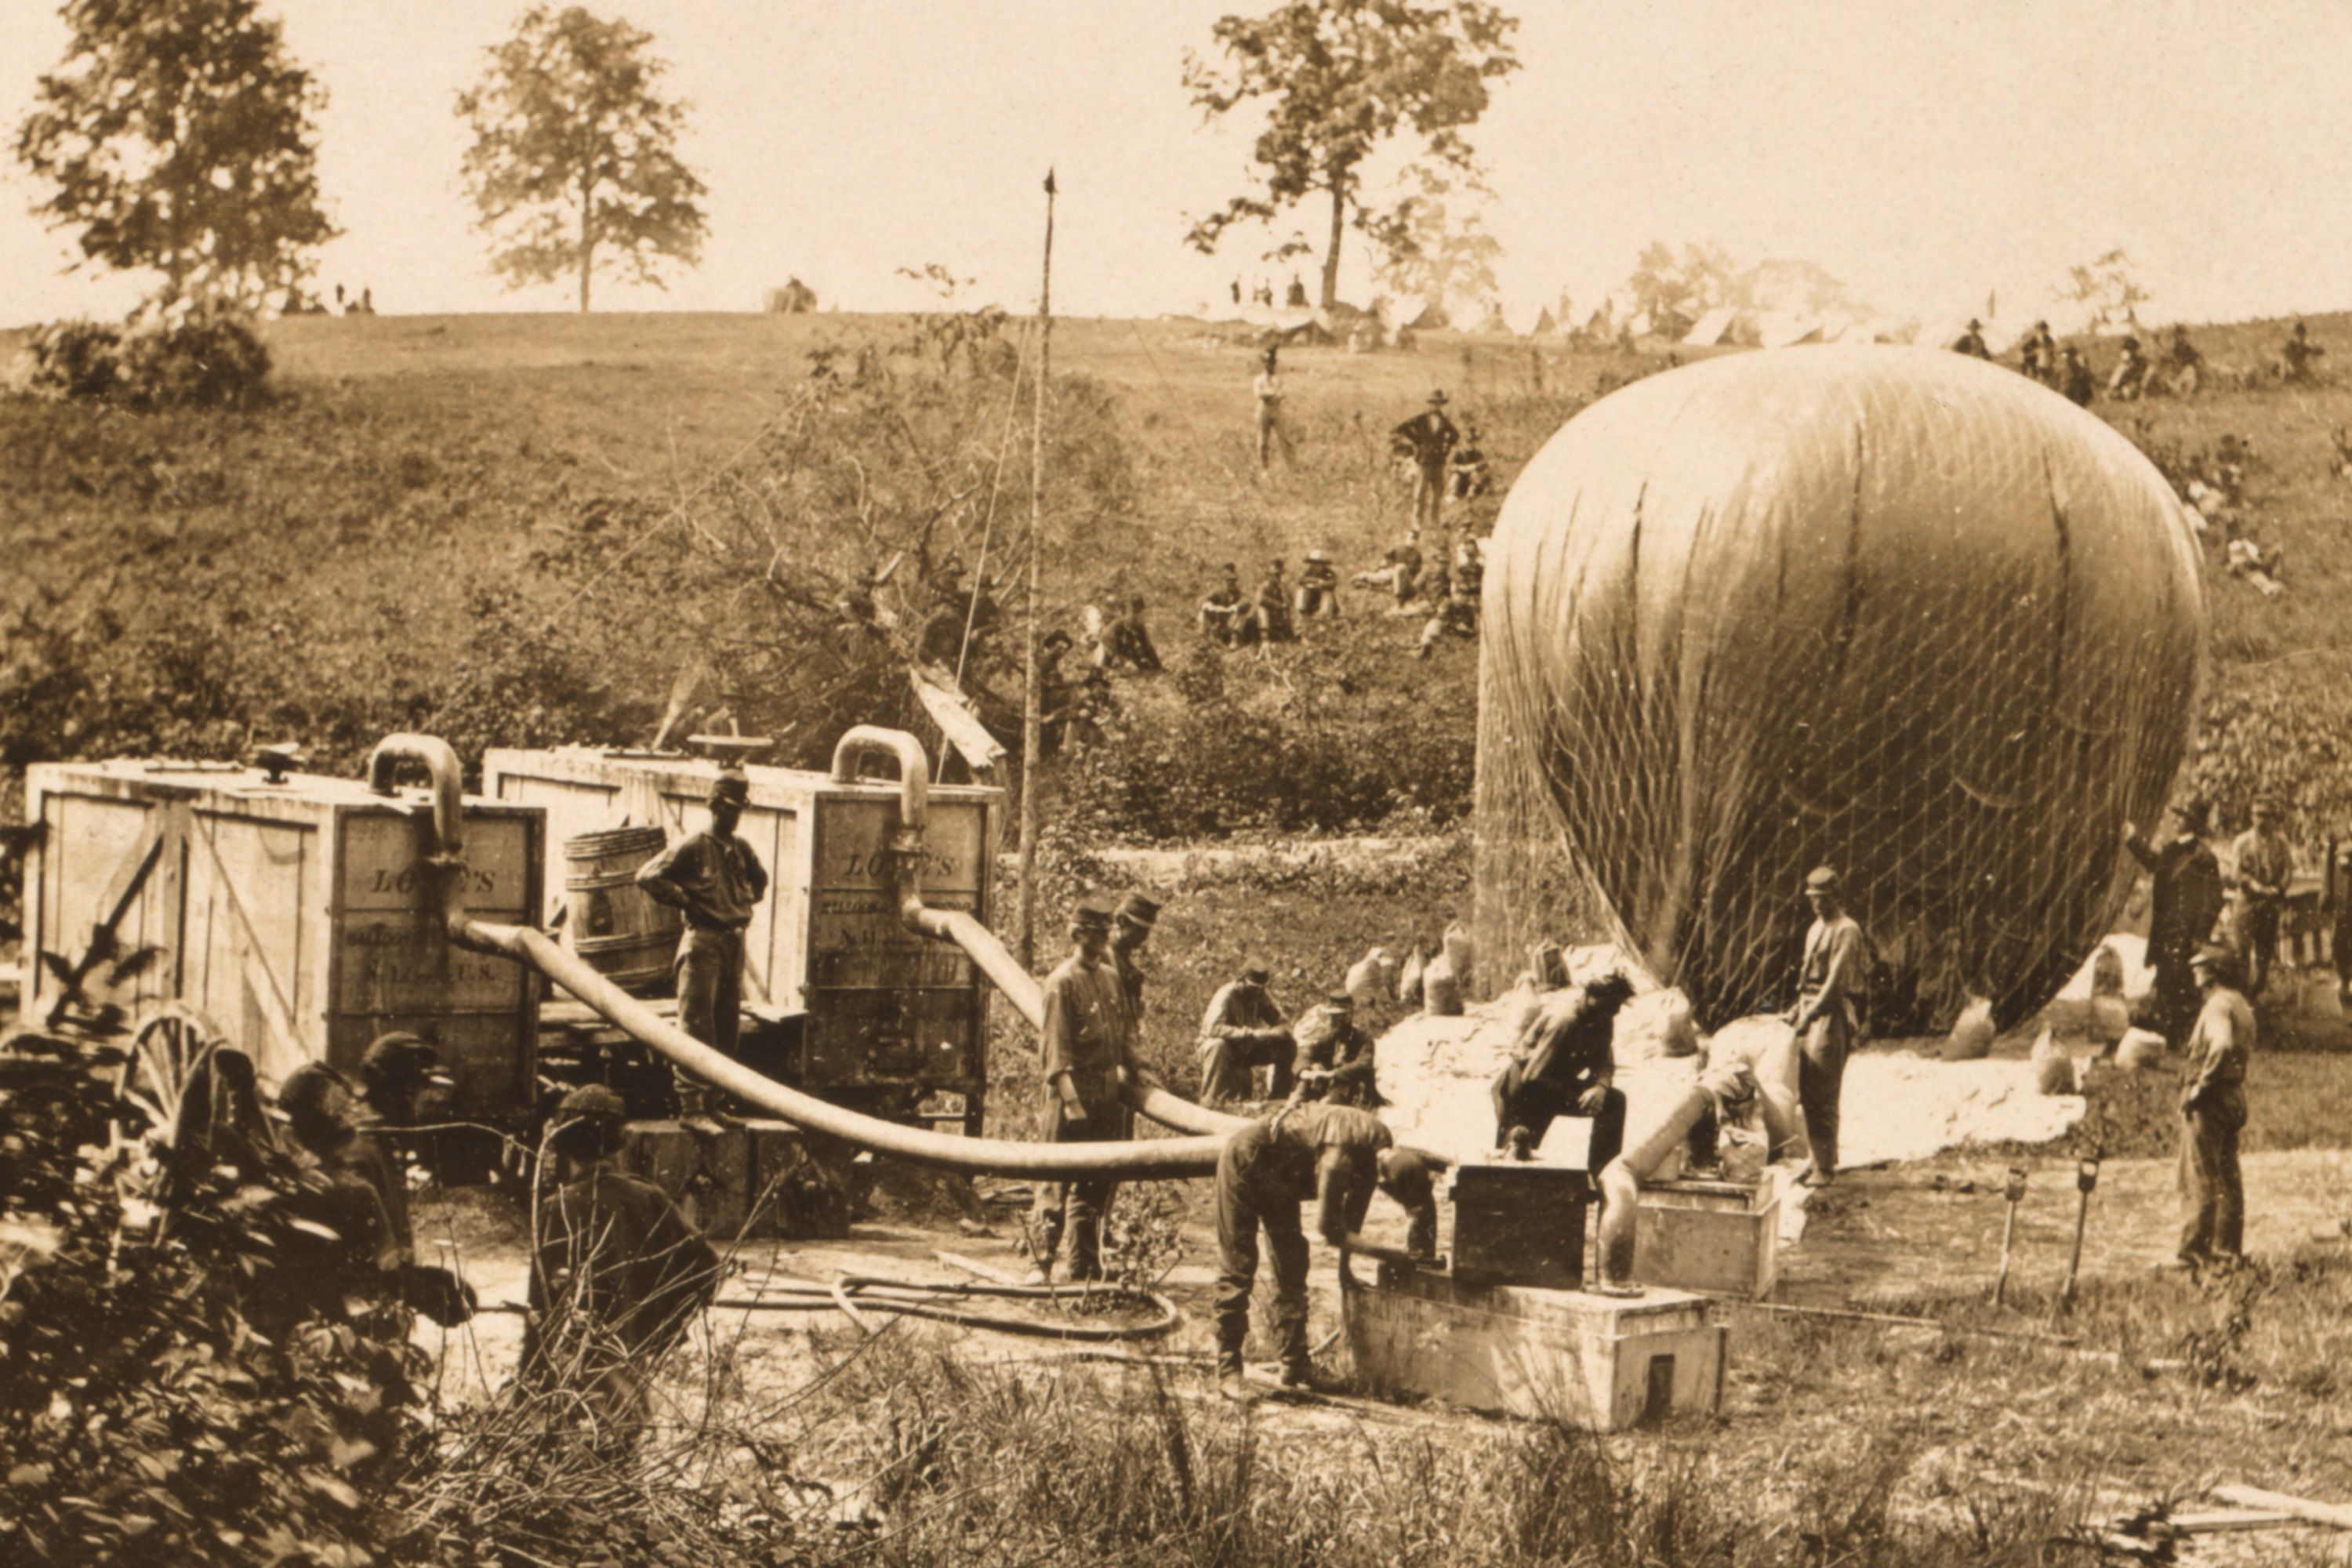 Thaddeus Lowe's balloon being inflated in 1862